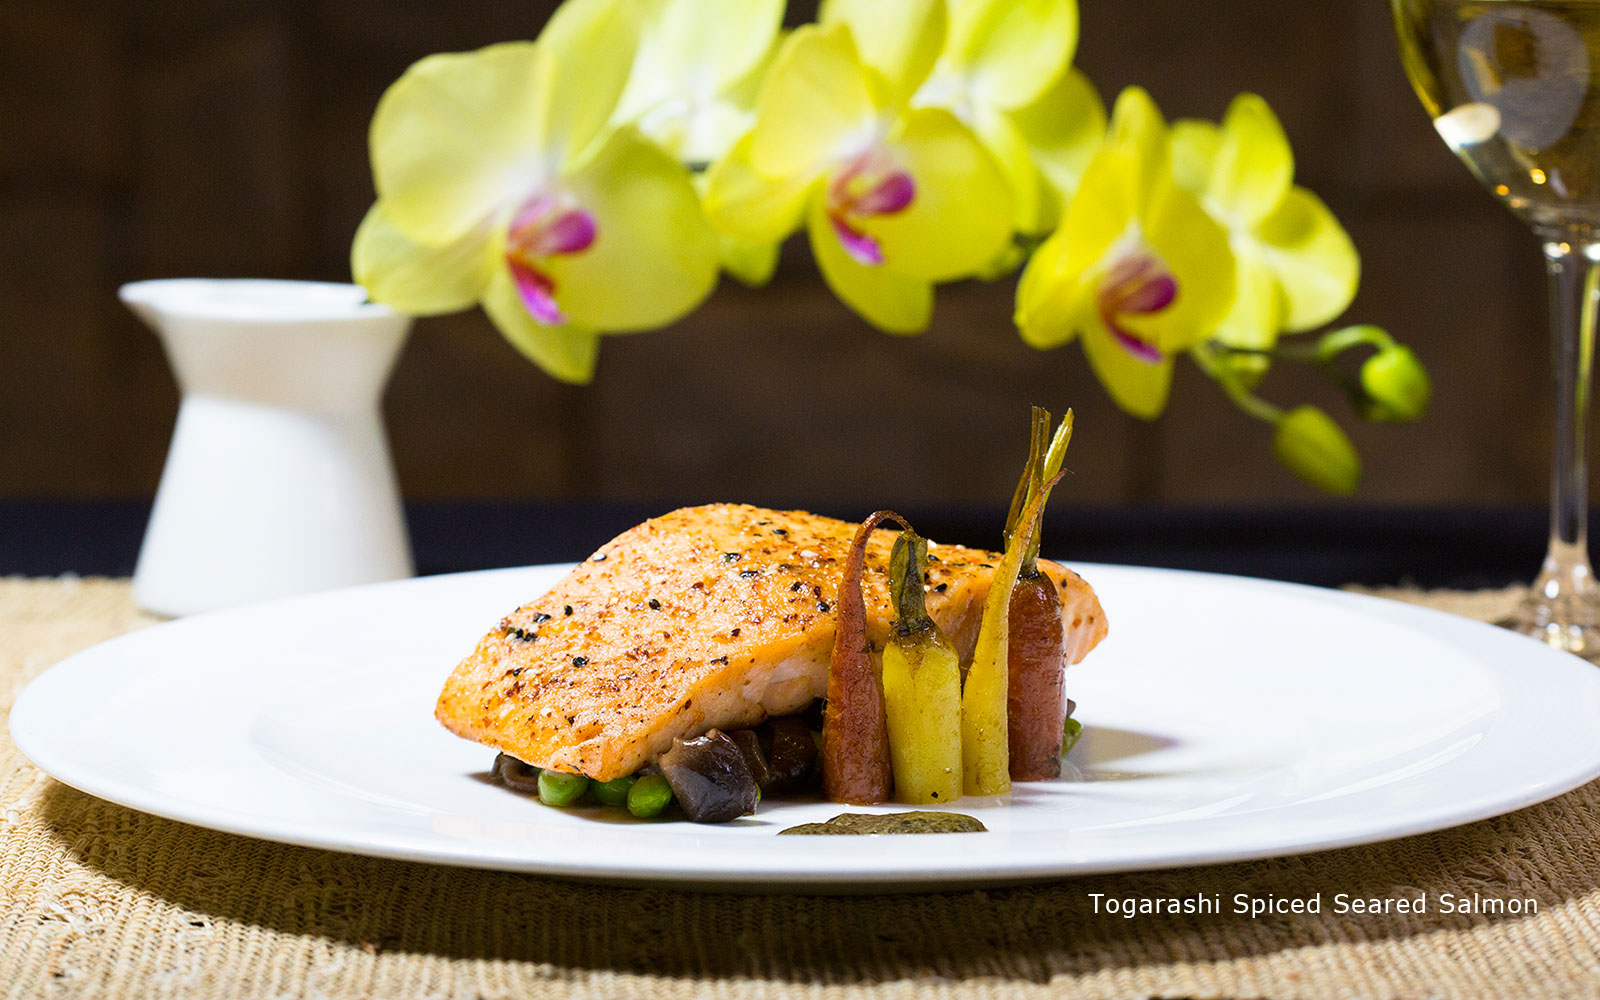 online store 89cc9 a75d8 Introducing Our Three-Course Japan Inspired Prix Fixe Menu